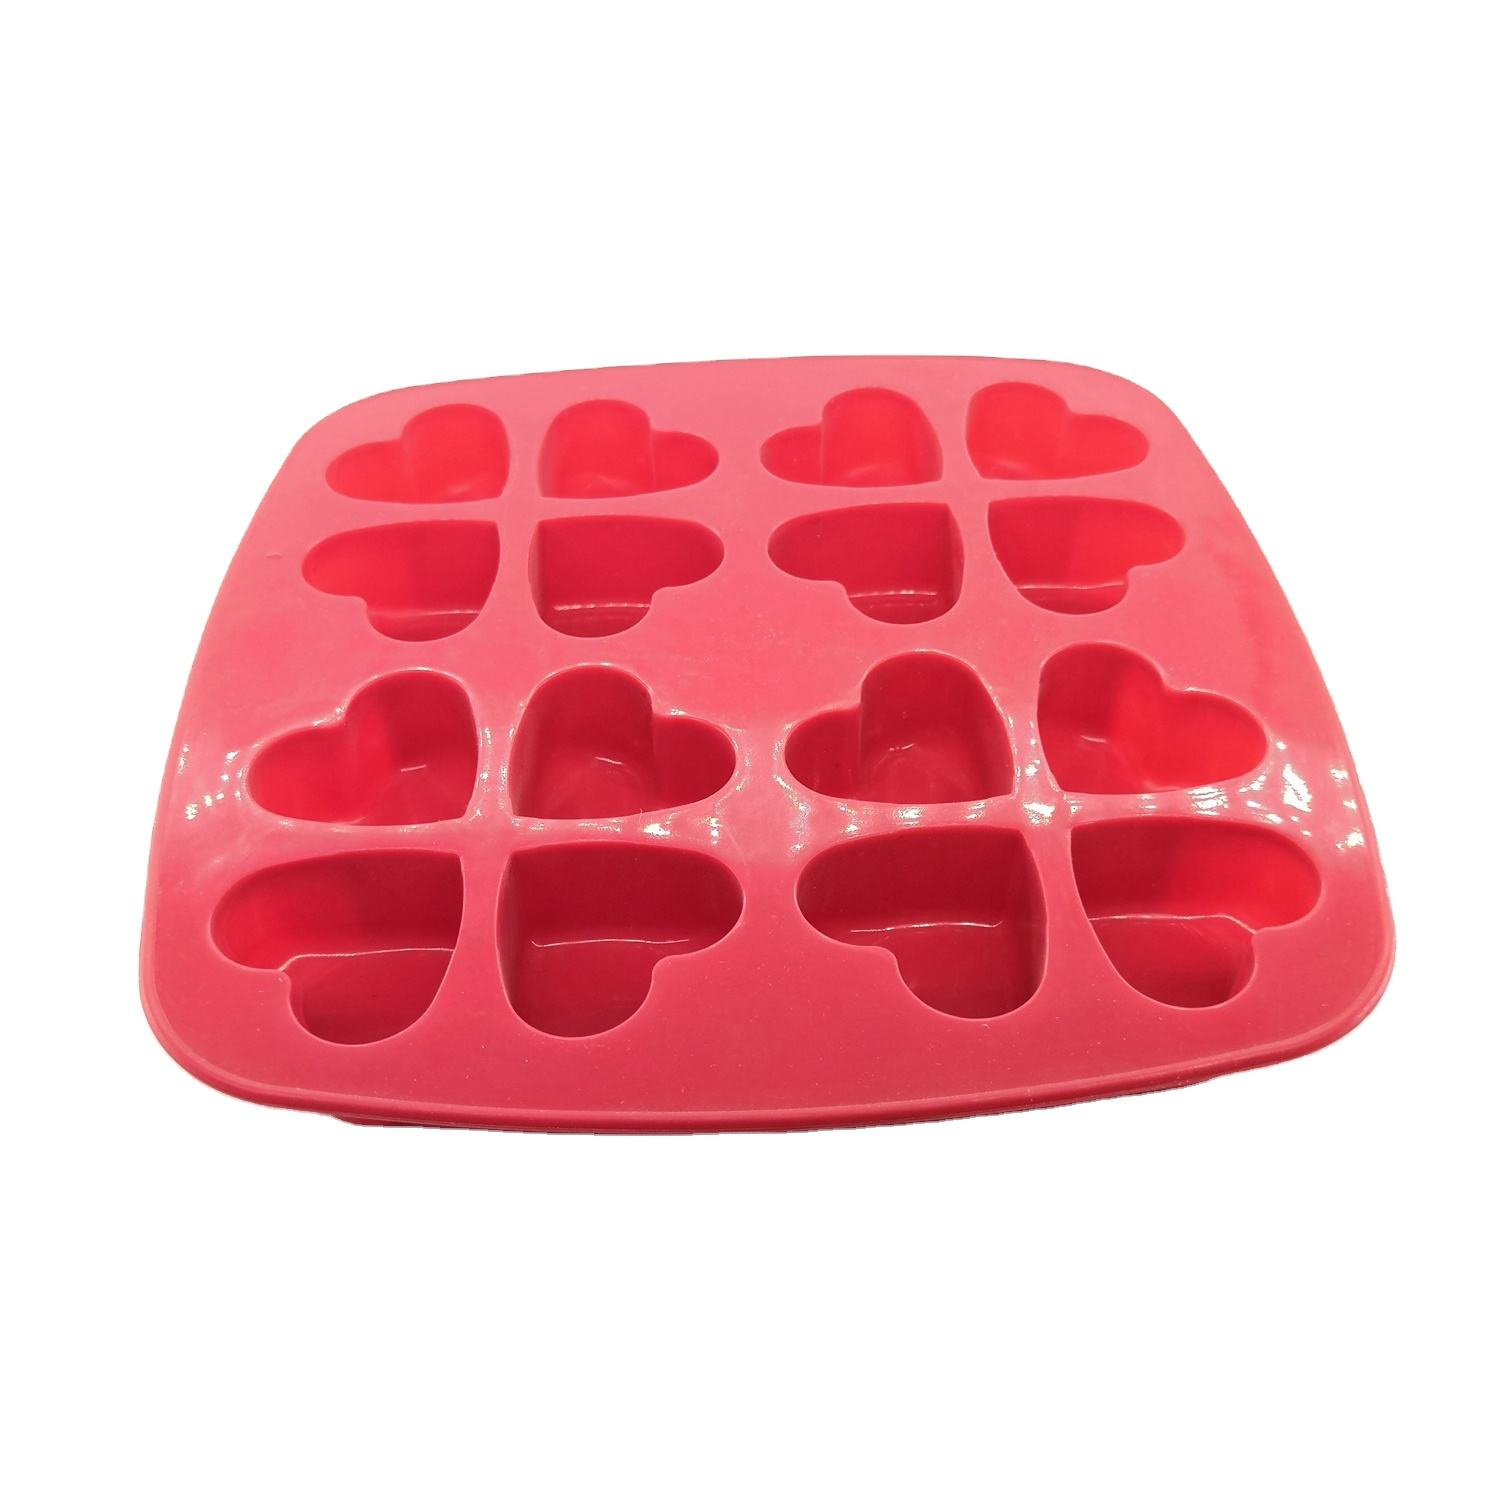 Heart-shaped Silicone Cake Mold Soft Chocolate Mold Ice Cream Mold Cake Mould Silicon Microwave Cake Cup